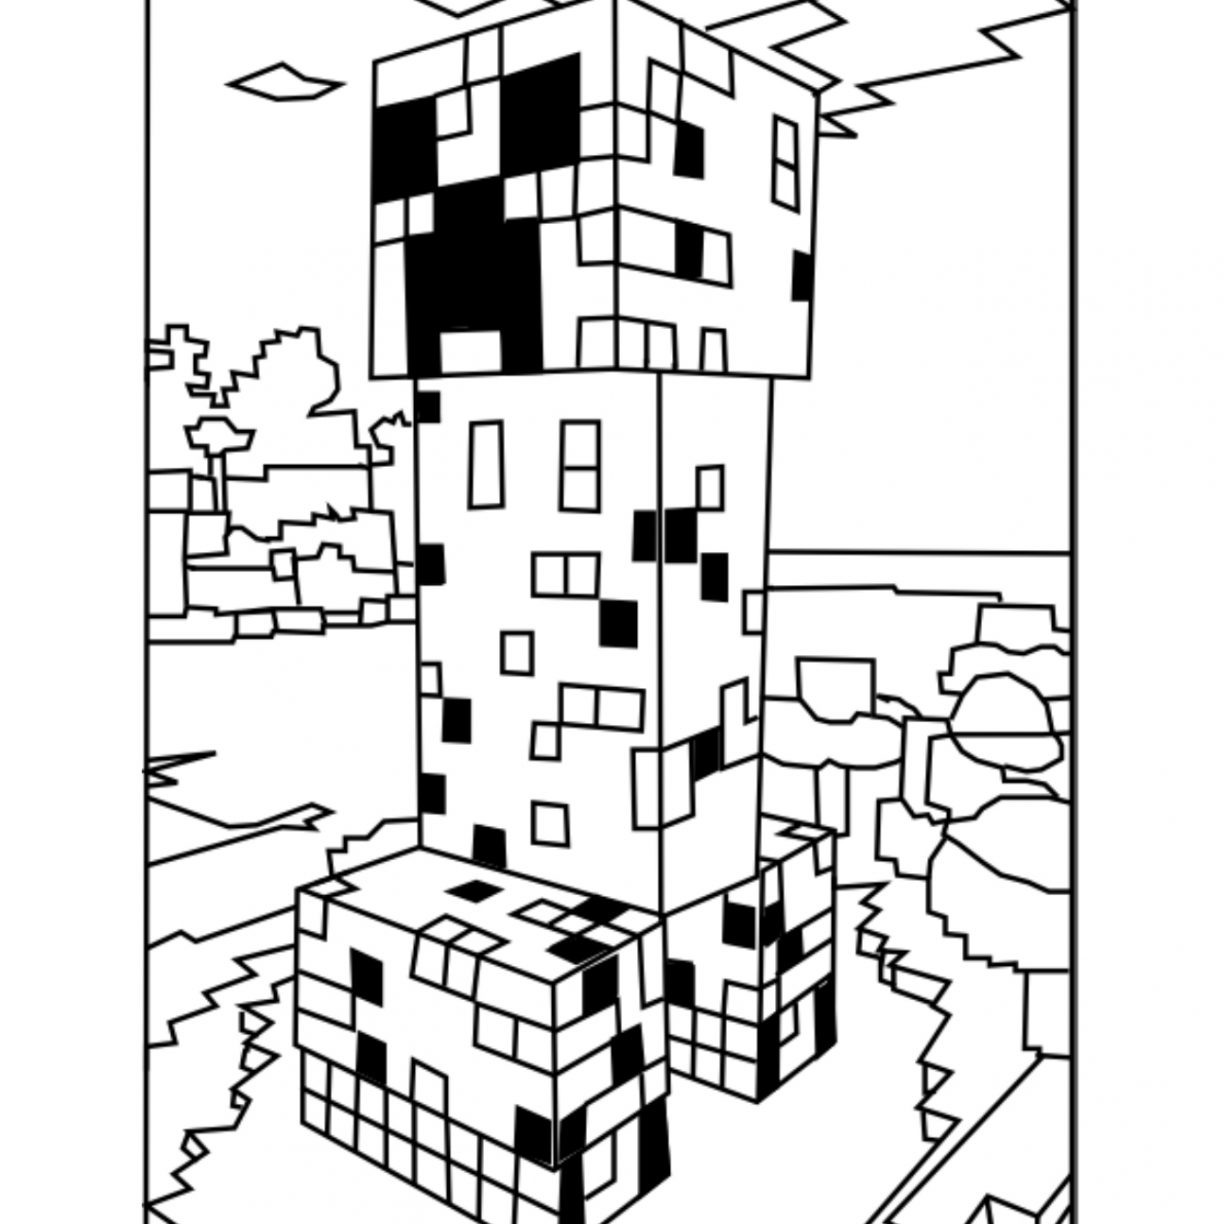 minecraft ocelot coloring pages minecraft alex coloring pages at getdrawings free download minecraft coloring pages ocelot